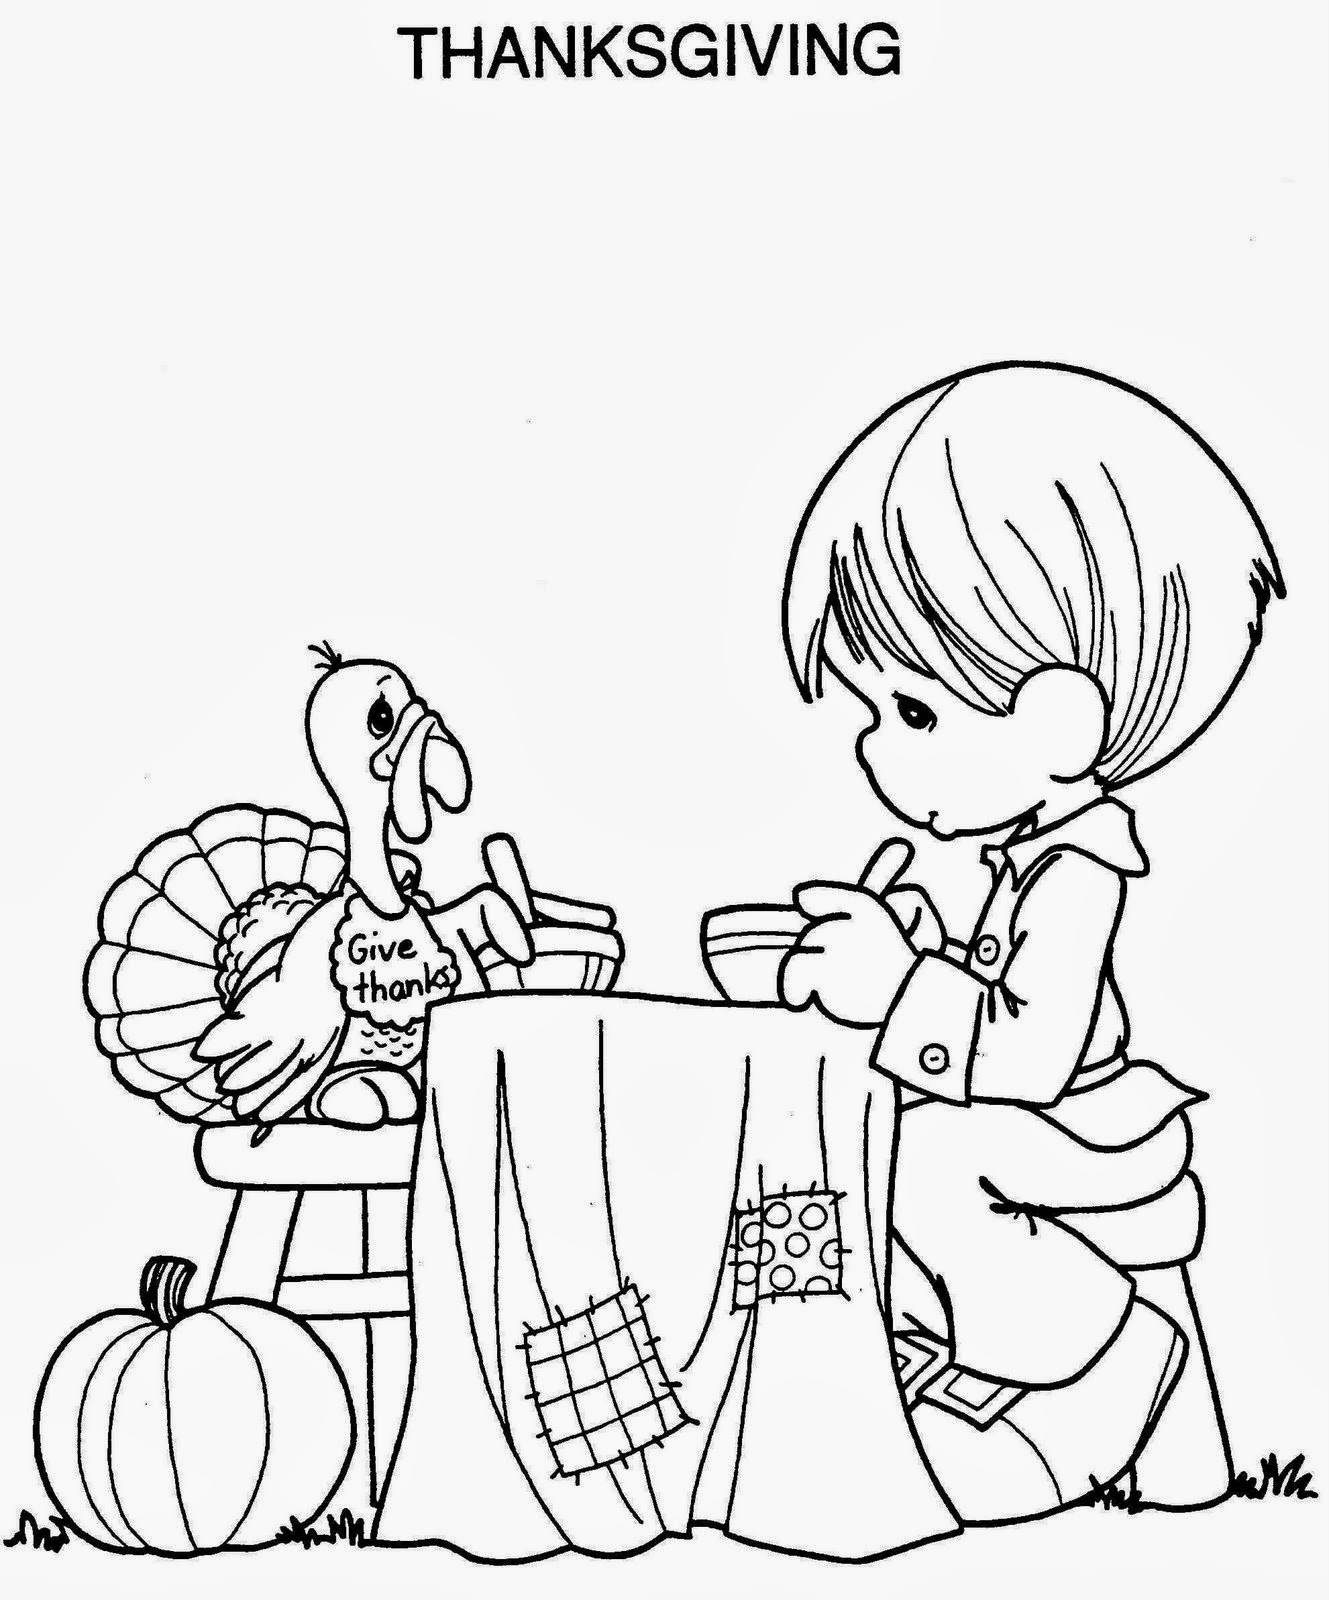 Thanksgiving day for coloring part 1 for Turkey coloring pages to print